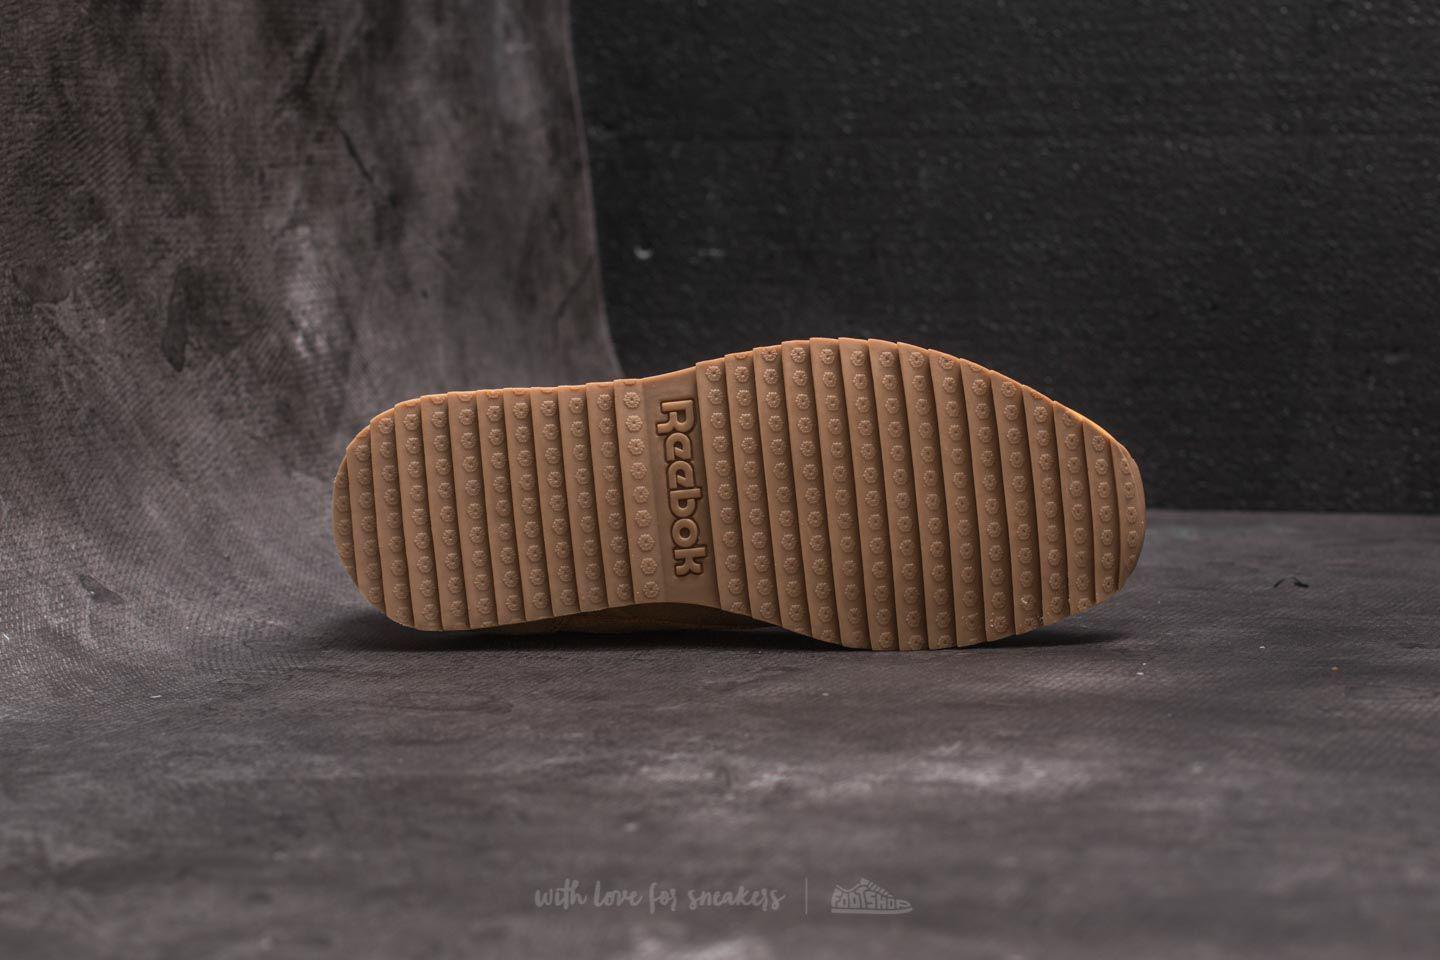 fd2b04c1f24f2 Lyst - Reebok Leather Ripple Wp Golden Wheat  Urban Grey  Chalk in ...